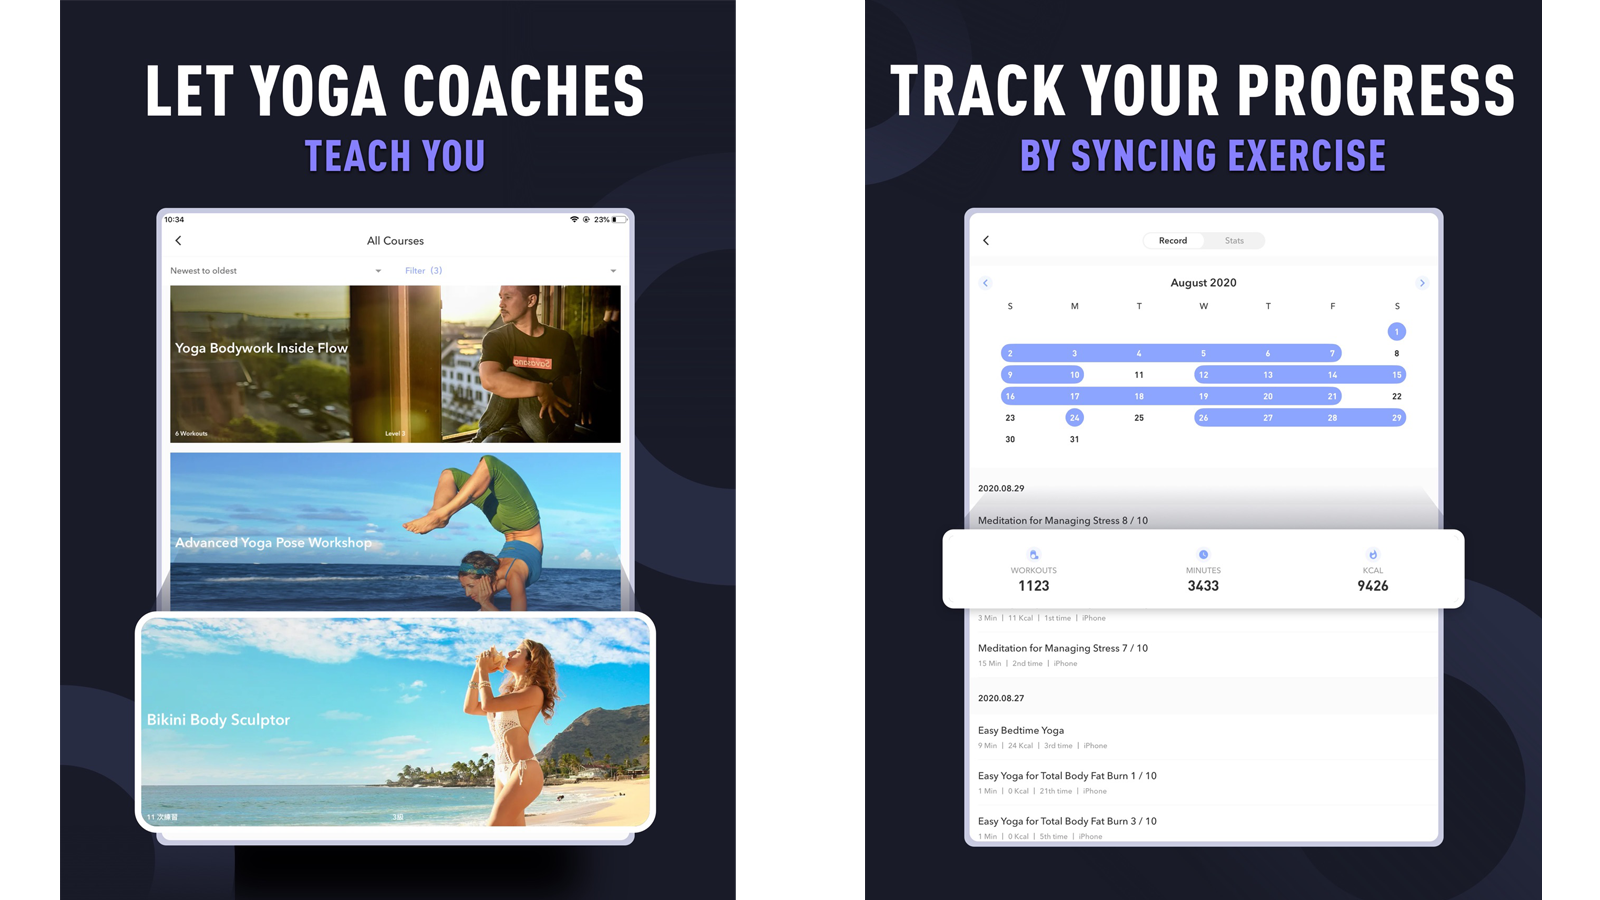 Daily Yoga app featuring multiple courses and coaches, and statistic tracking metrics